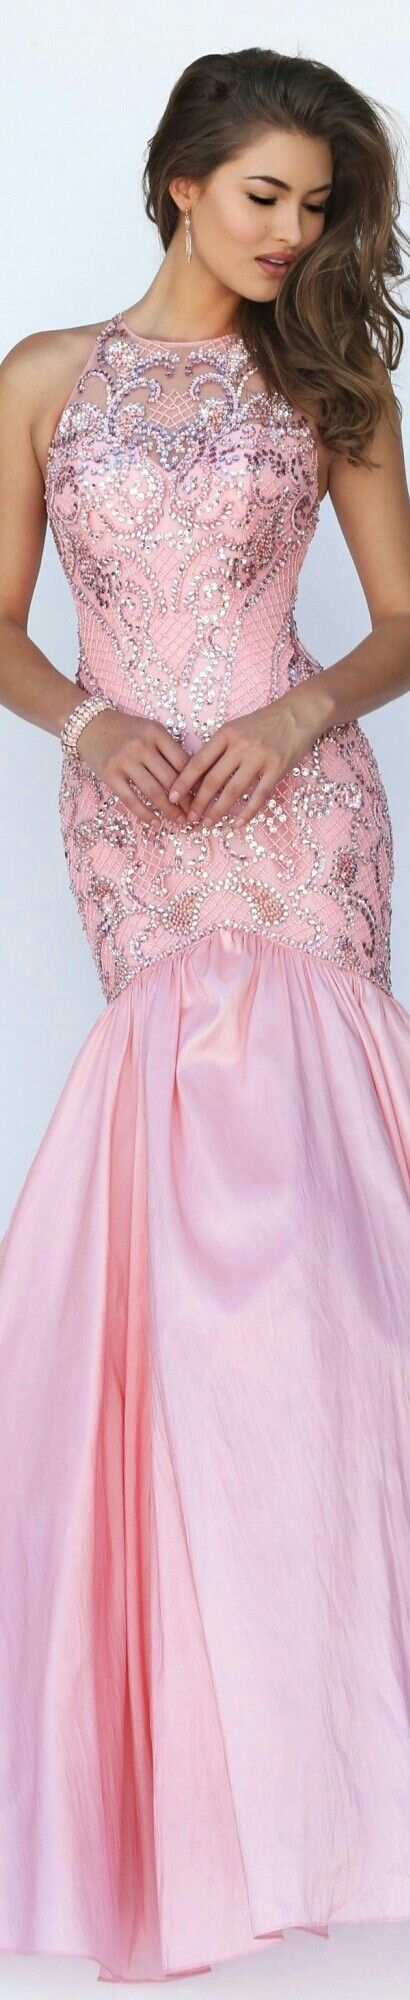 1140 best PROM: Other special events. images on Pinterest   Cute ...